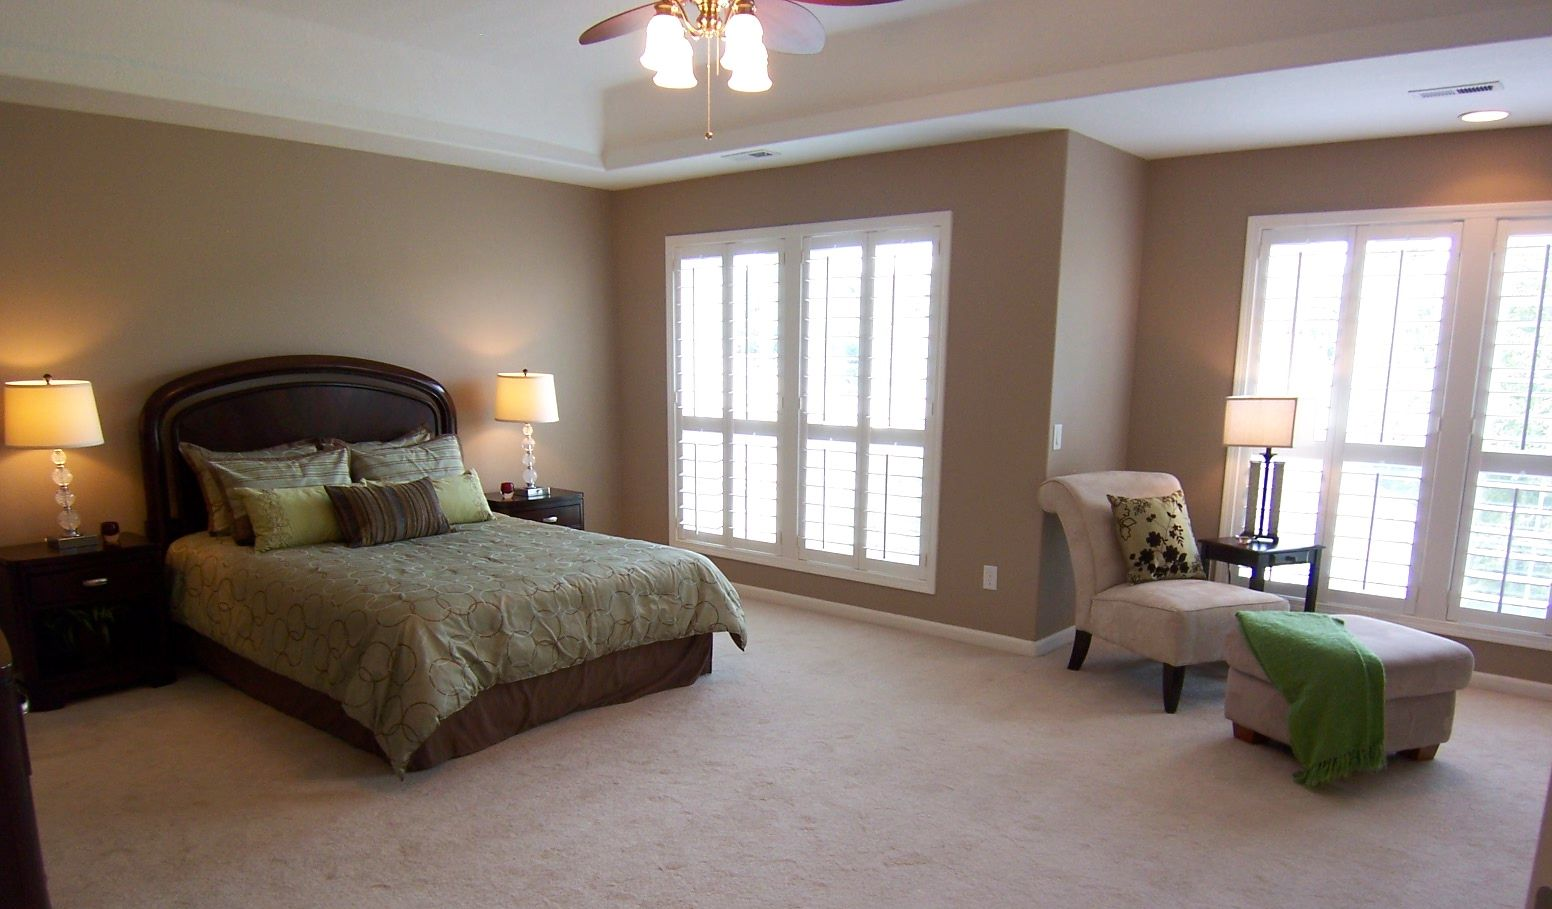 In a large master bedroom it's nice to show another area